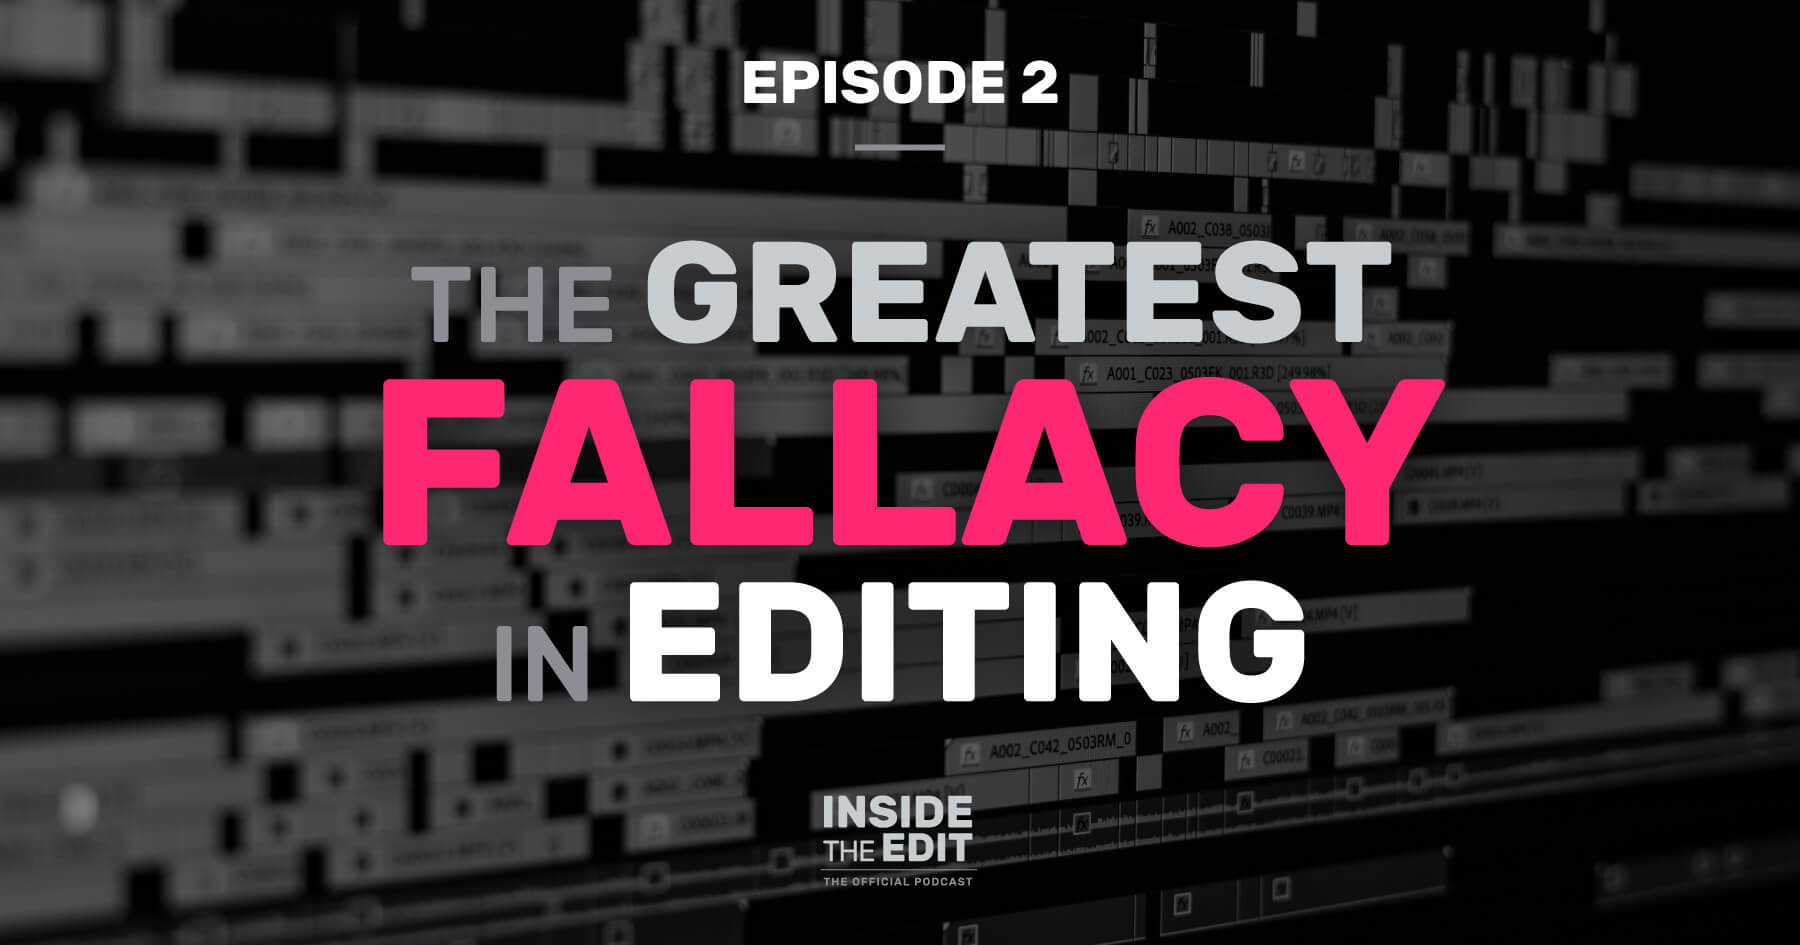 The Greatest Fallacy in Editing